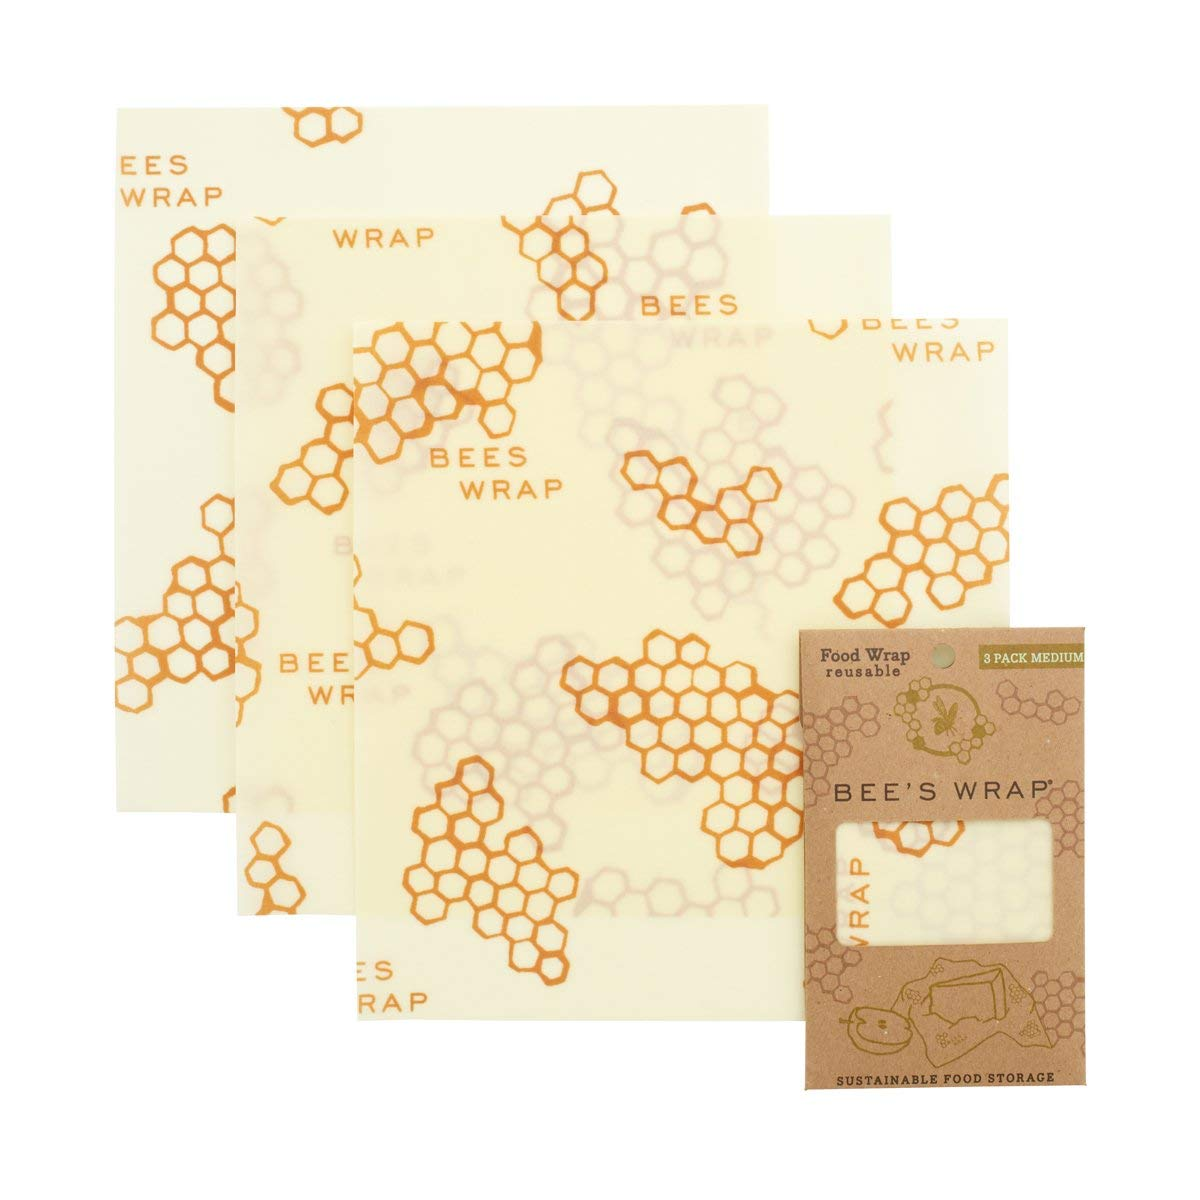 Bee's Wrap set of 3 (3x medium) beeswax cloths,the environmentally-friendly alternative to plastic sheet or foil Bee's Wrap